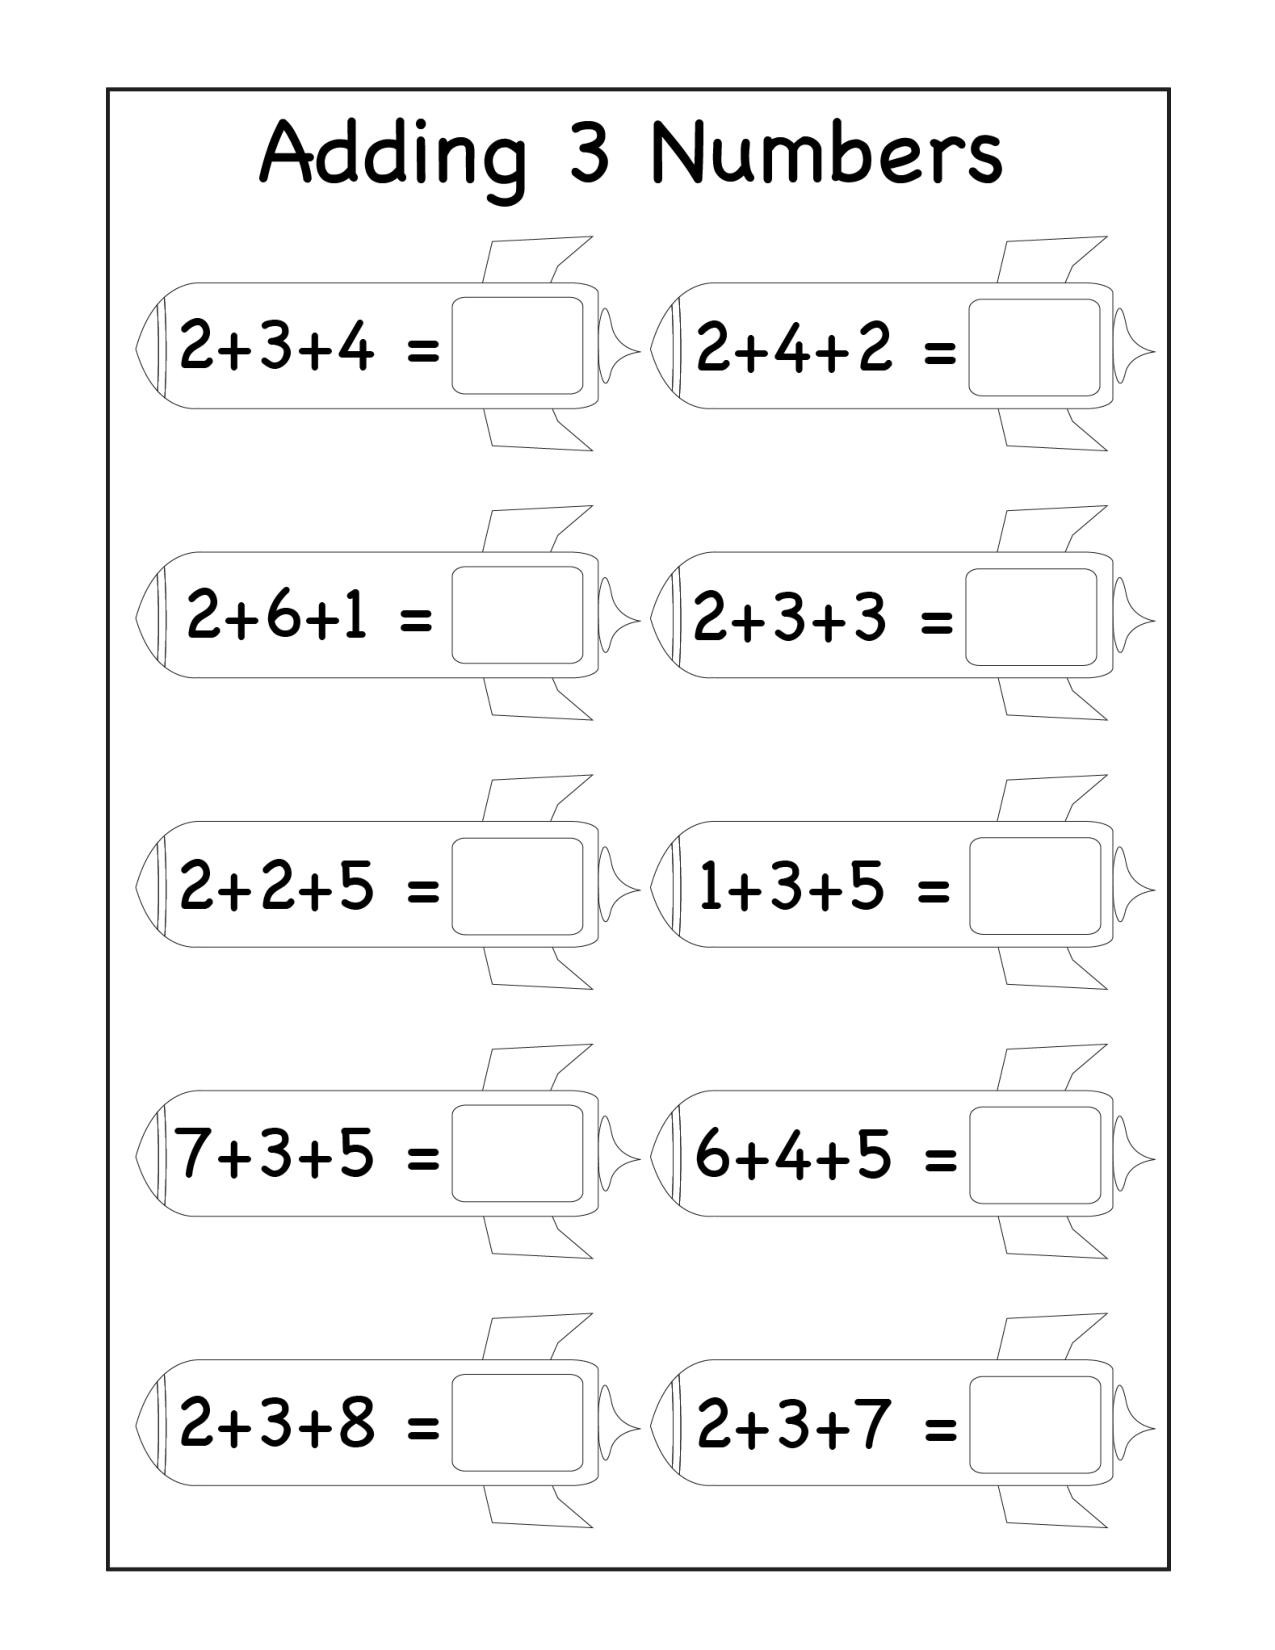 Missing Addend Worksheets First Grade 1st Grade Archives Page 4 Of 13